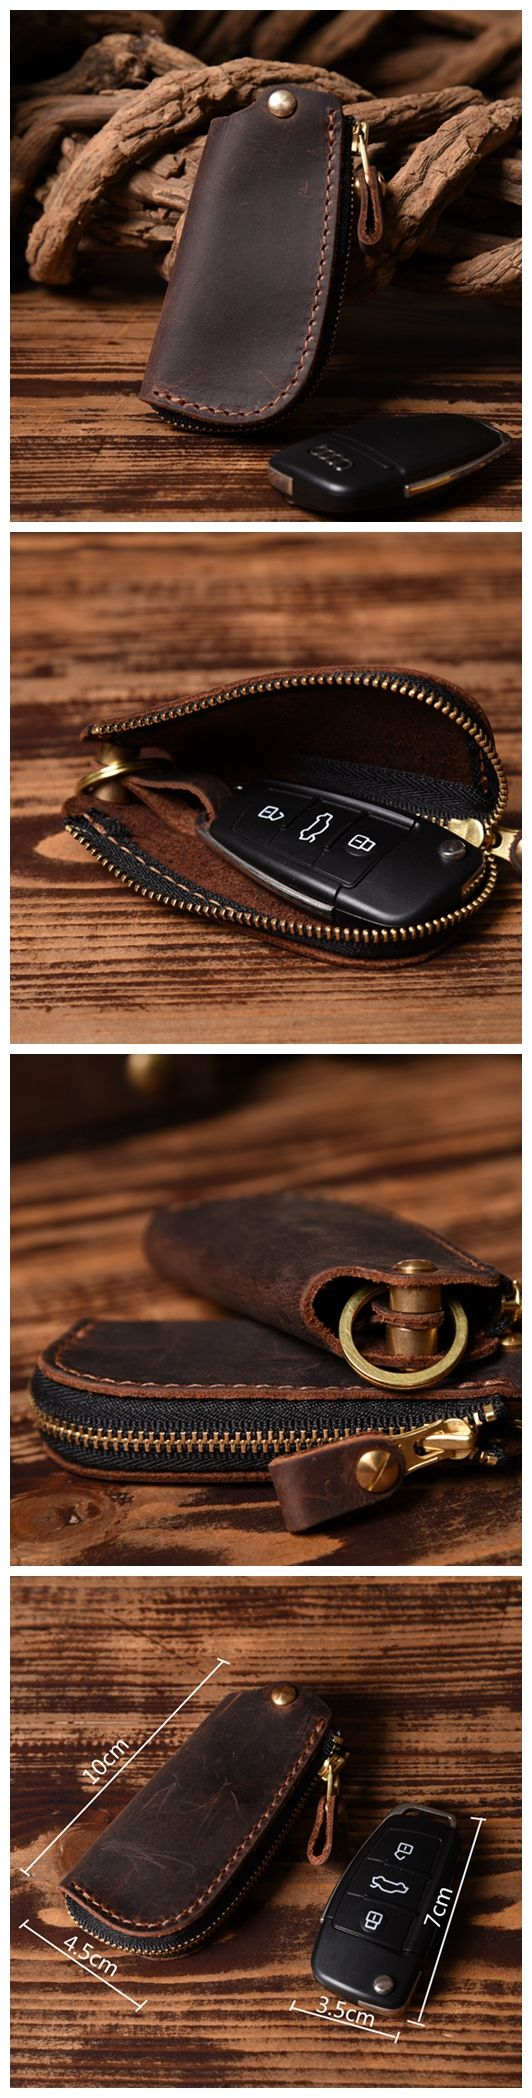 Handmade Genuine Leather Car Key Holder Leather Key Organizer Leather Key Chain Leather Case 14128